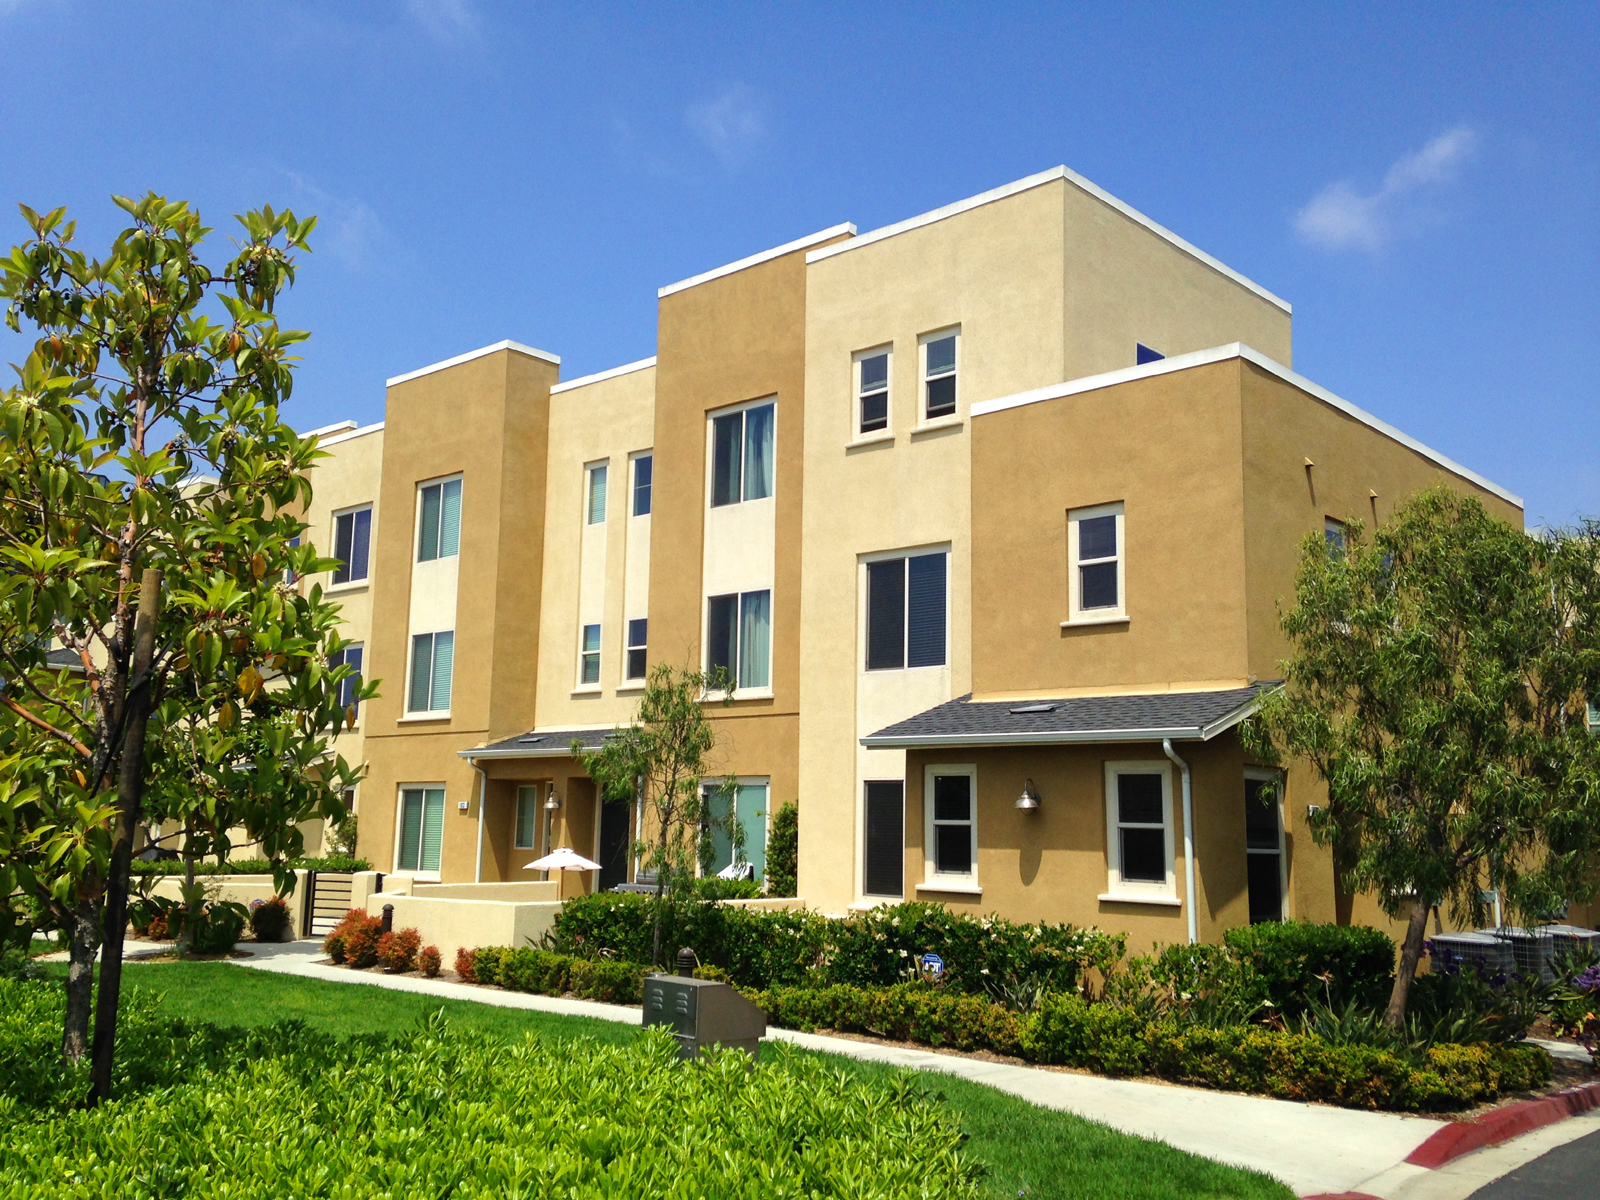 Floorplans and styles for everyone in 360. condos townhomes and